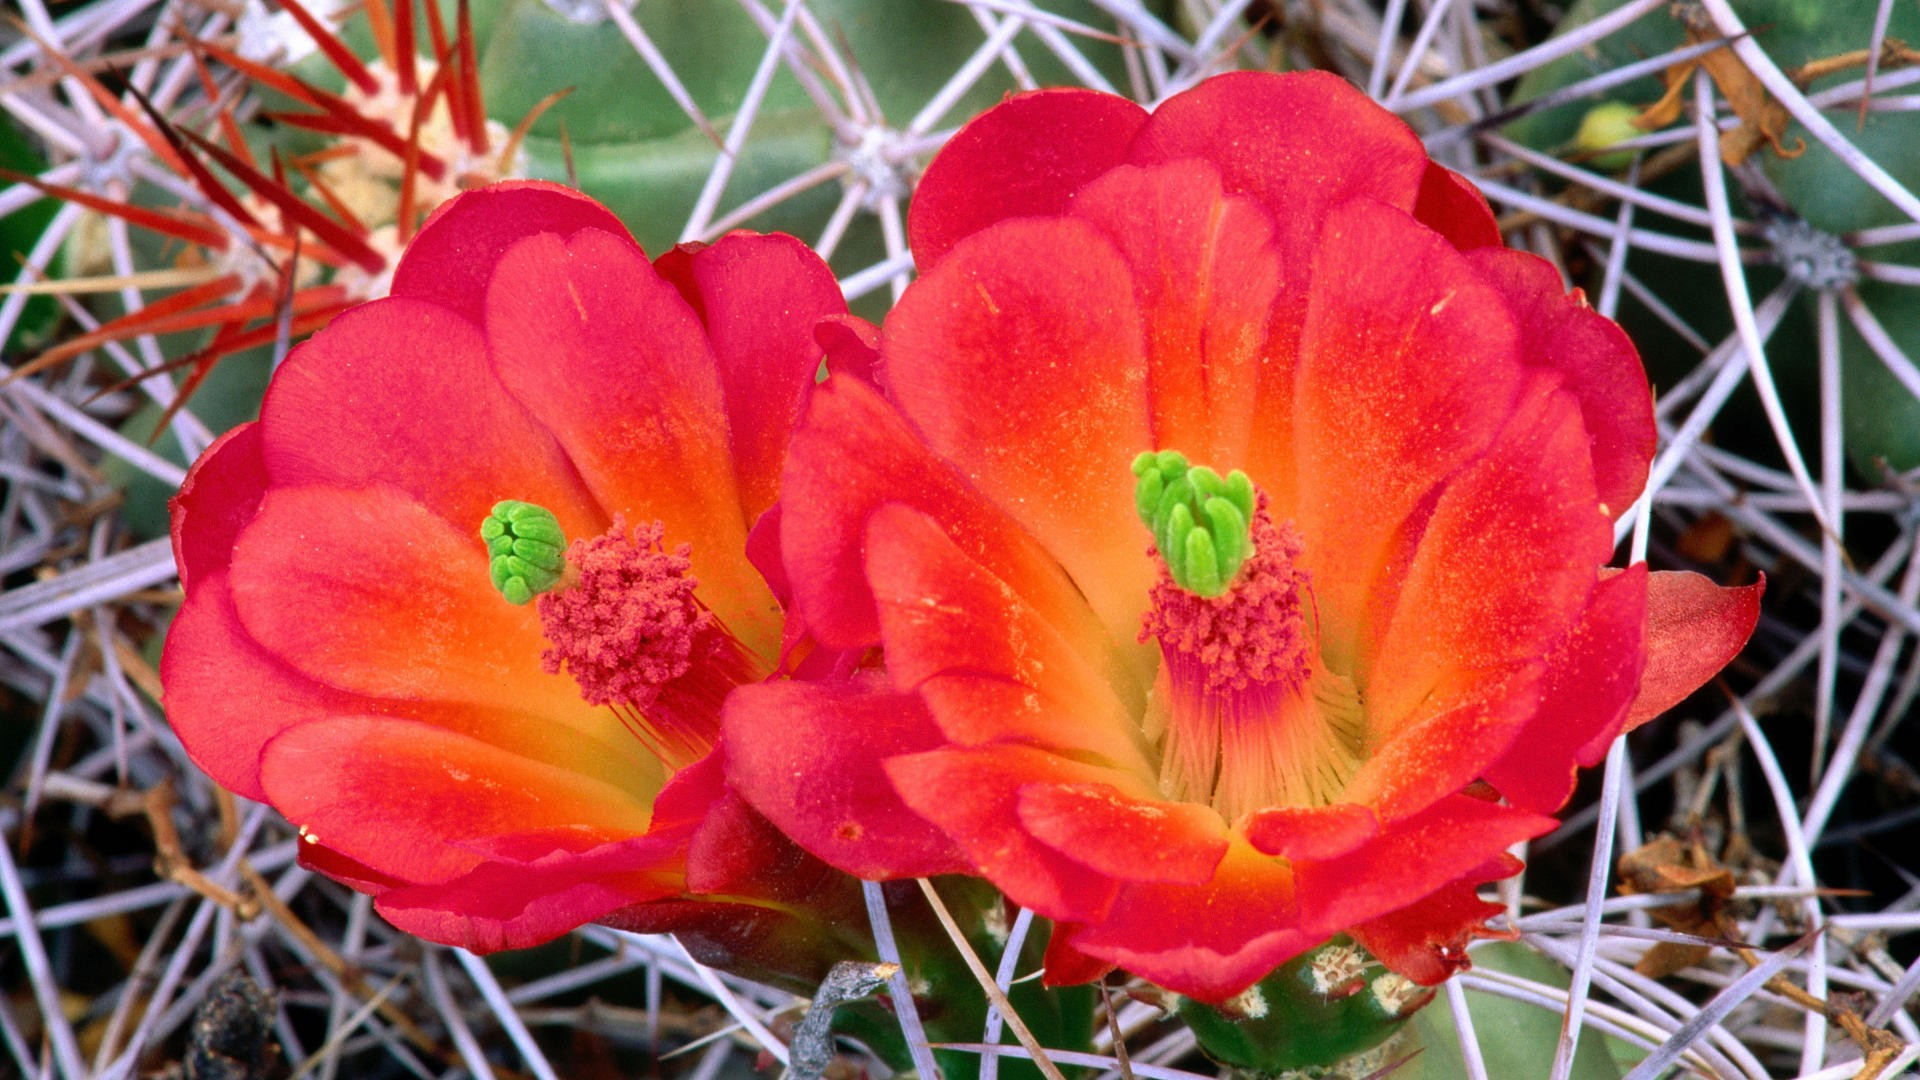 cactus-macro-cactus-flowers-fresh-new-hd-1920×1080-wallpaper-wp3603829